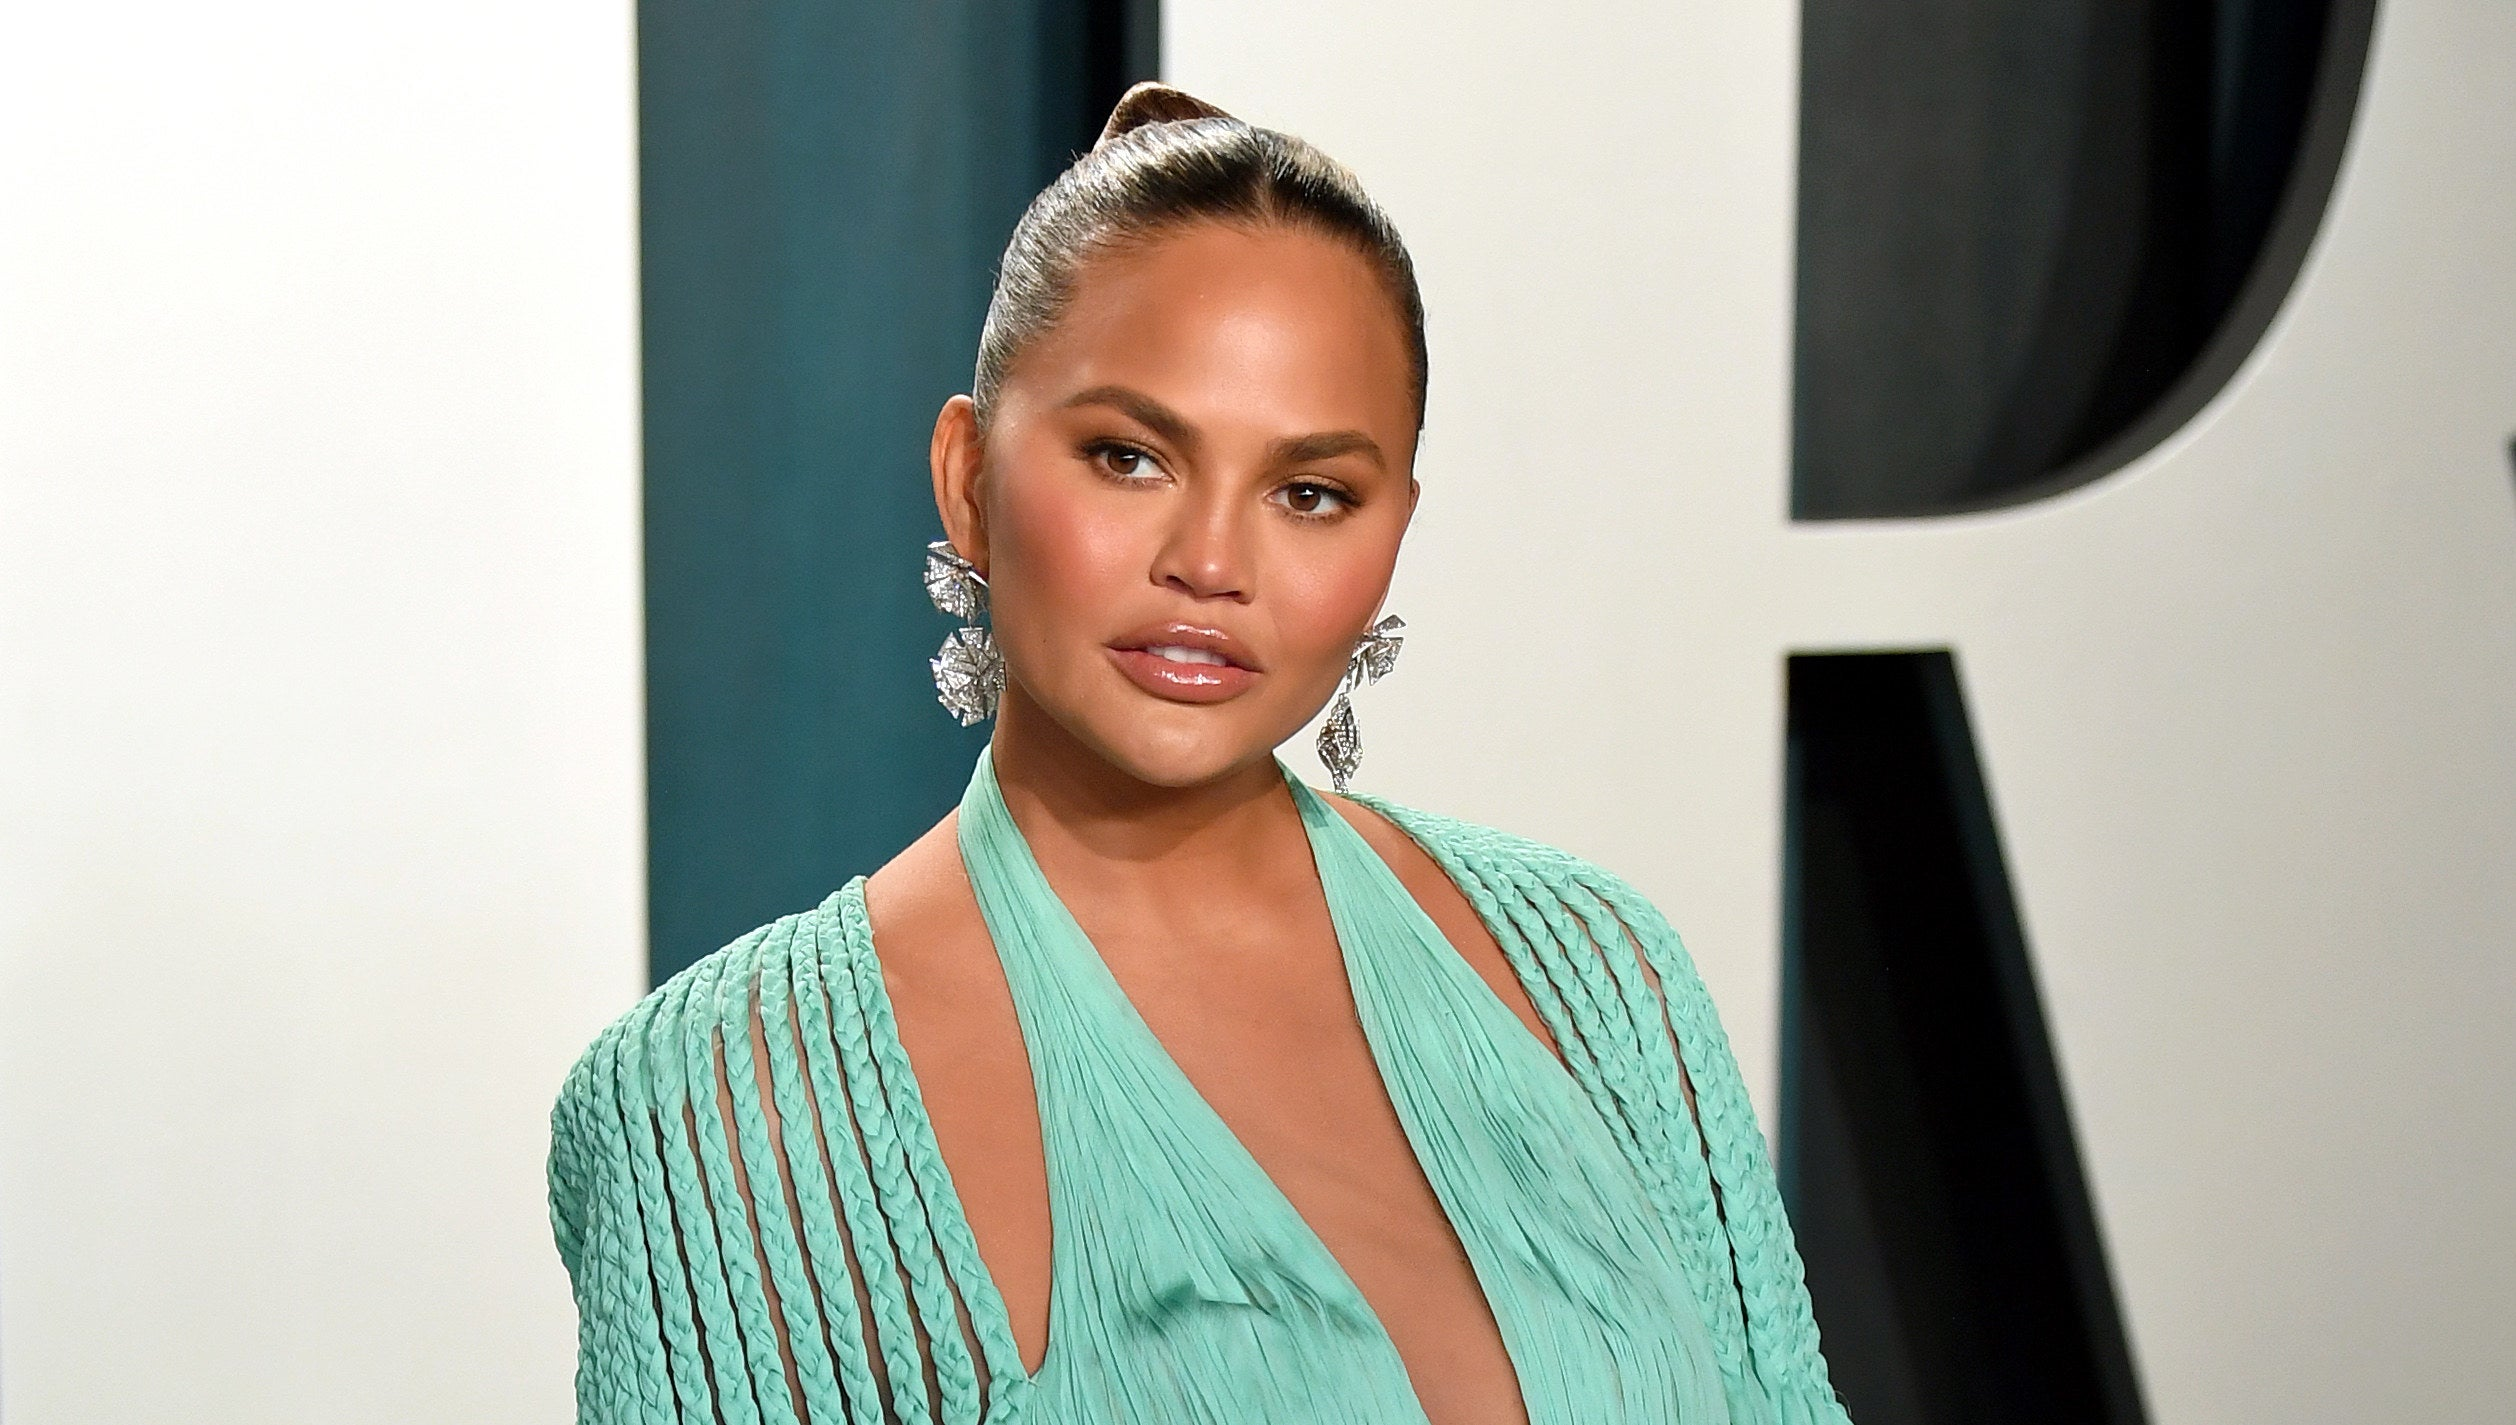 Photo of Chrissy Teigen in a seafoam green dress looking at something off-camera